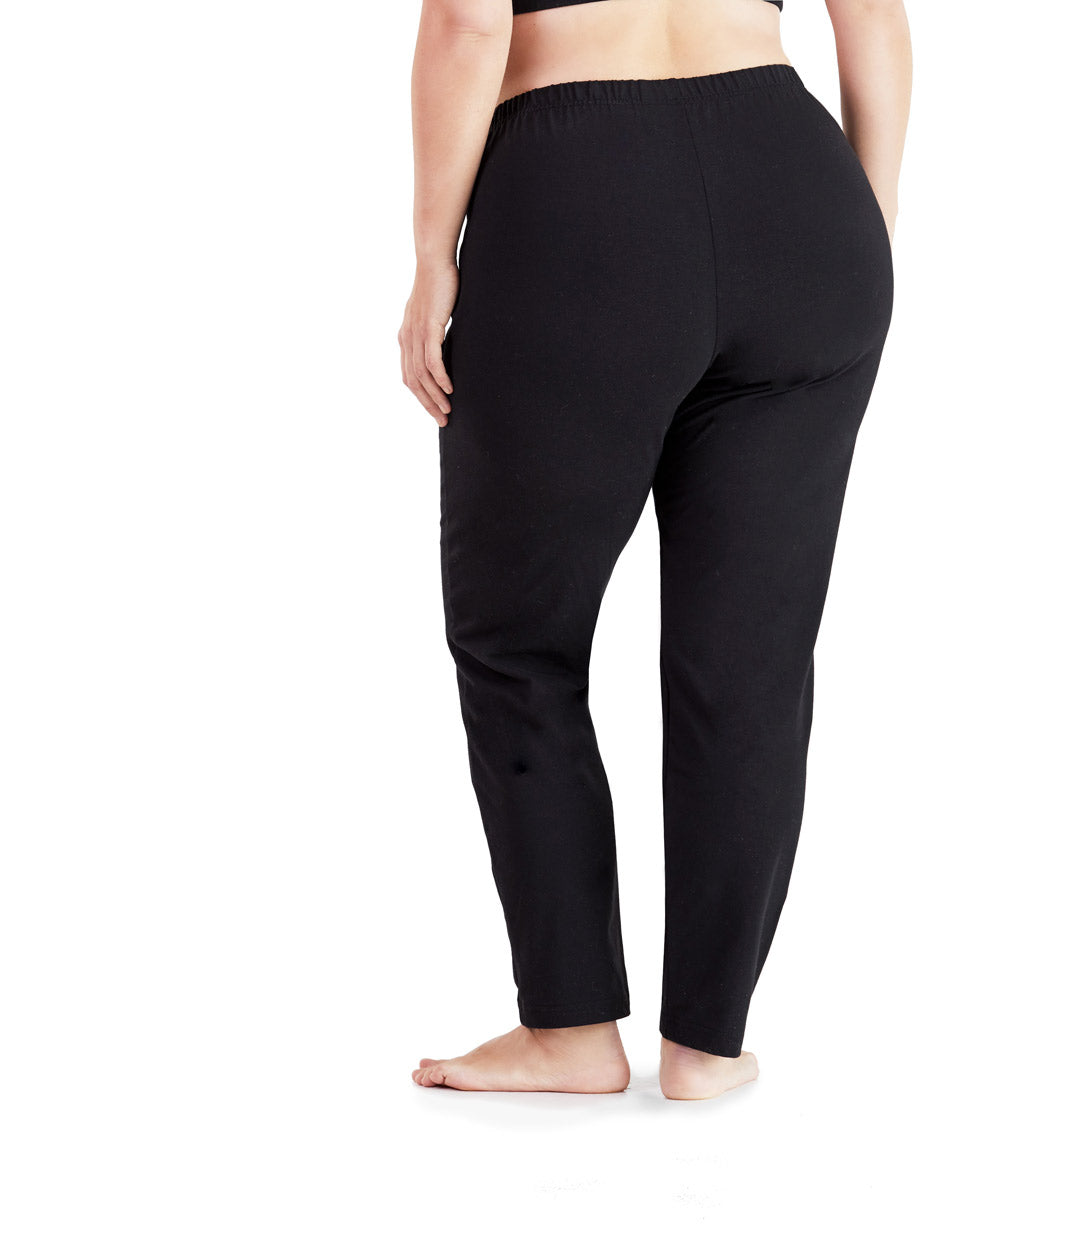 plus size yoga pants black